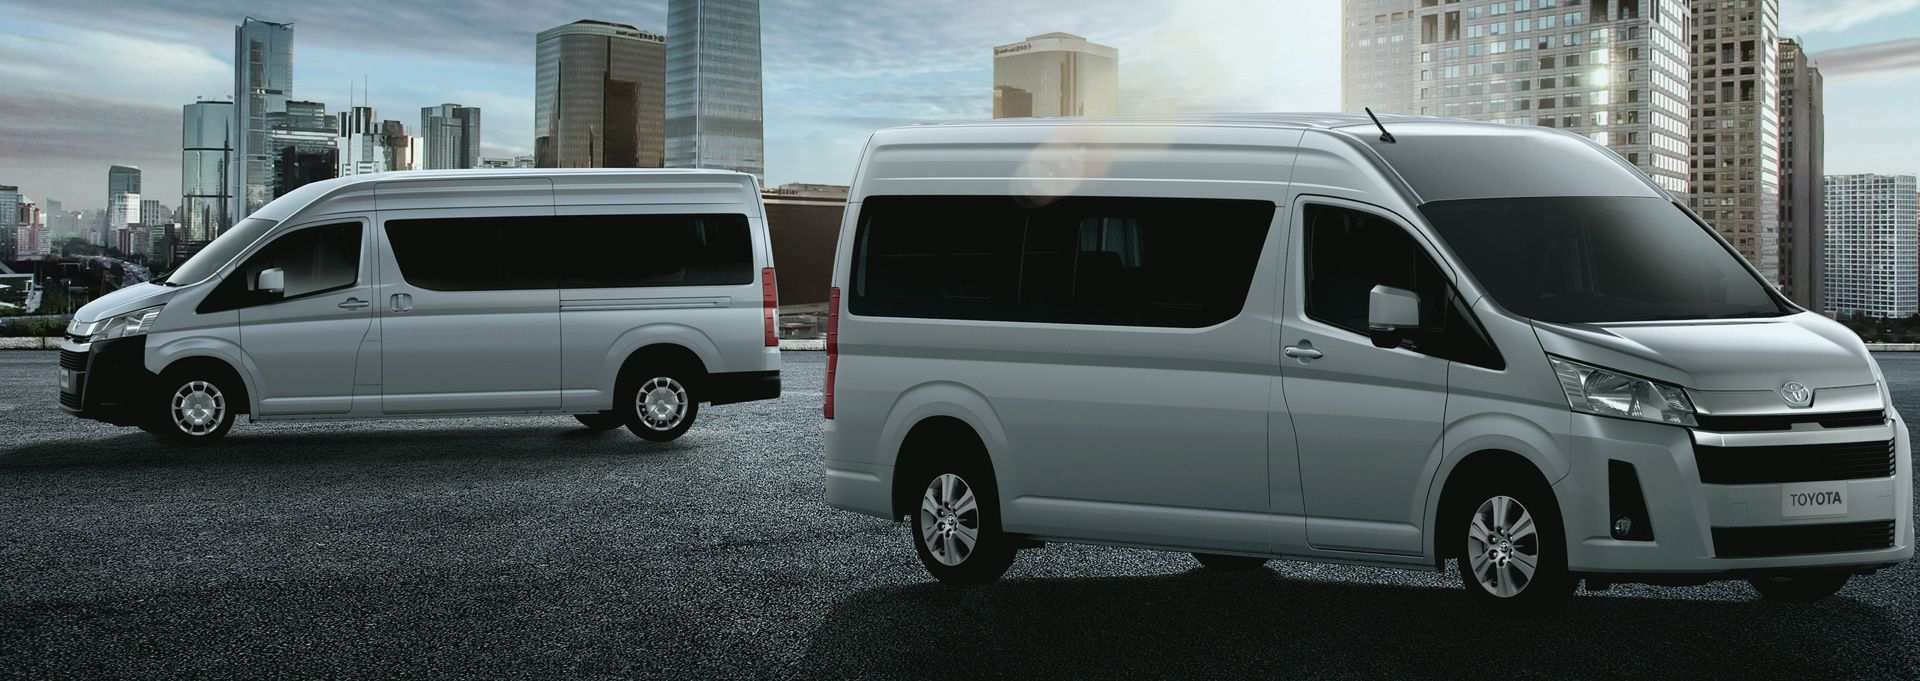 25 A Toyota Bus 2020 Price And Release Date